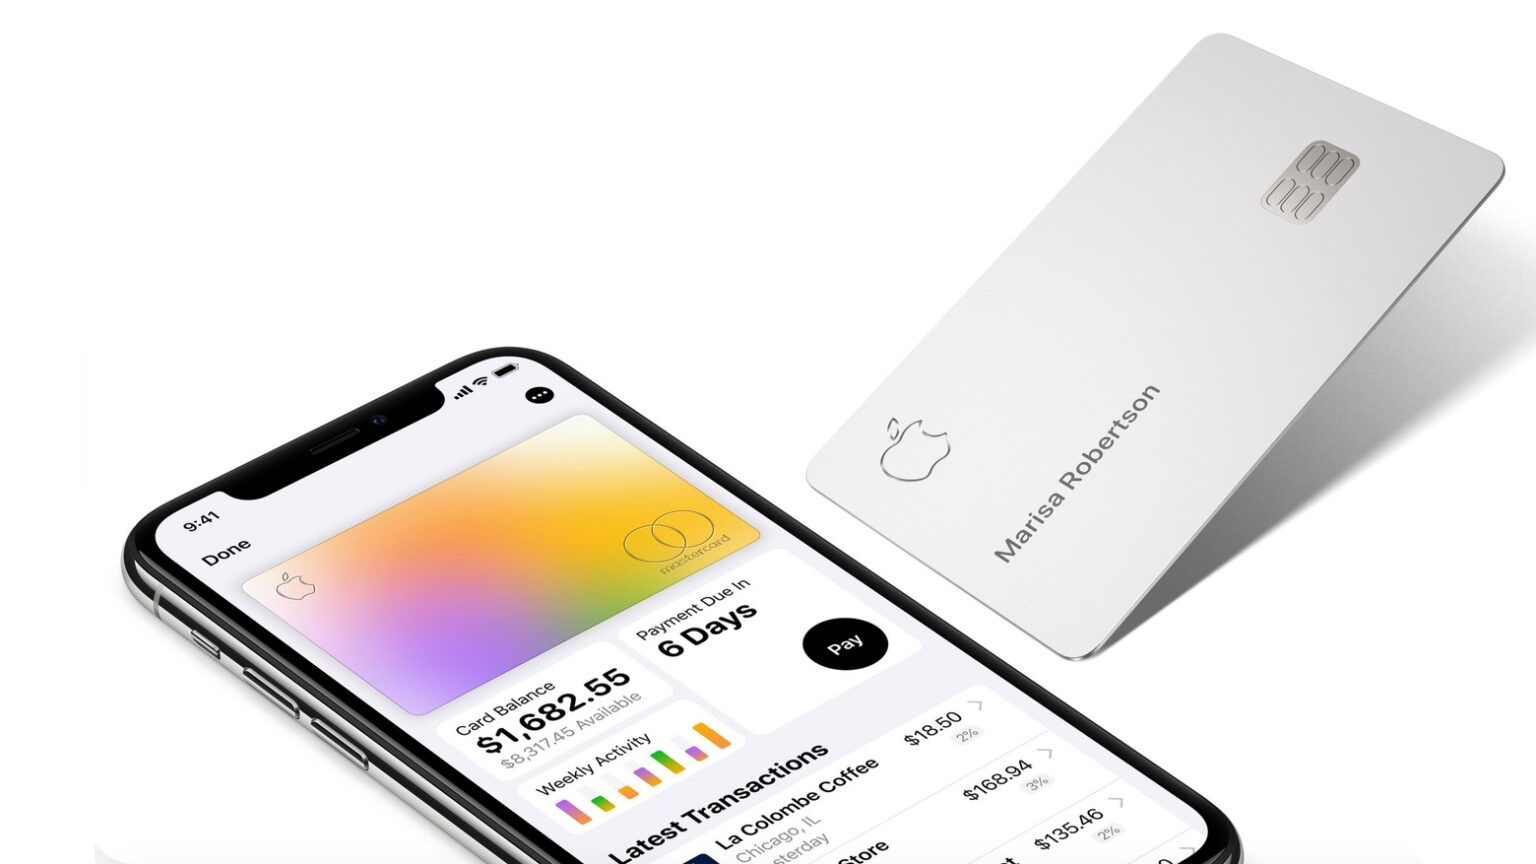 Apple Card works hand-in-hand with iPhone